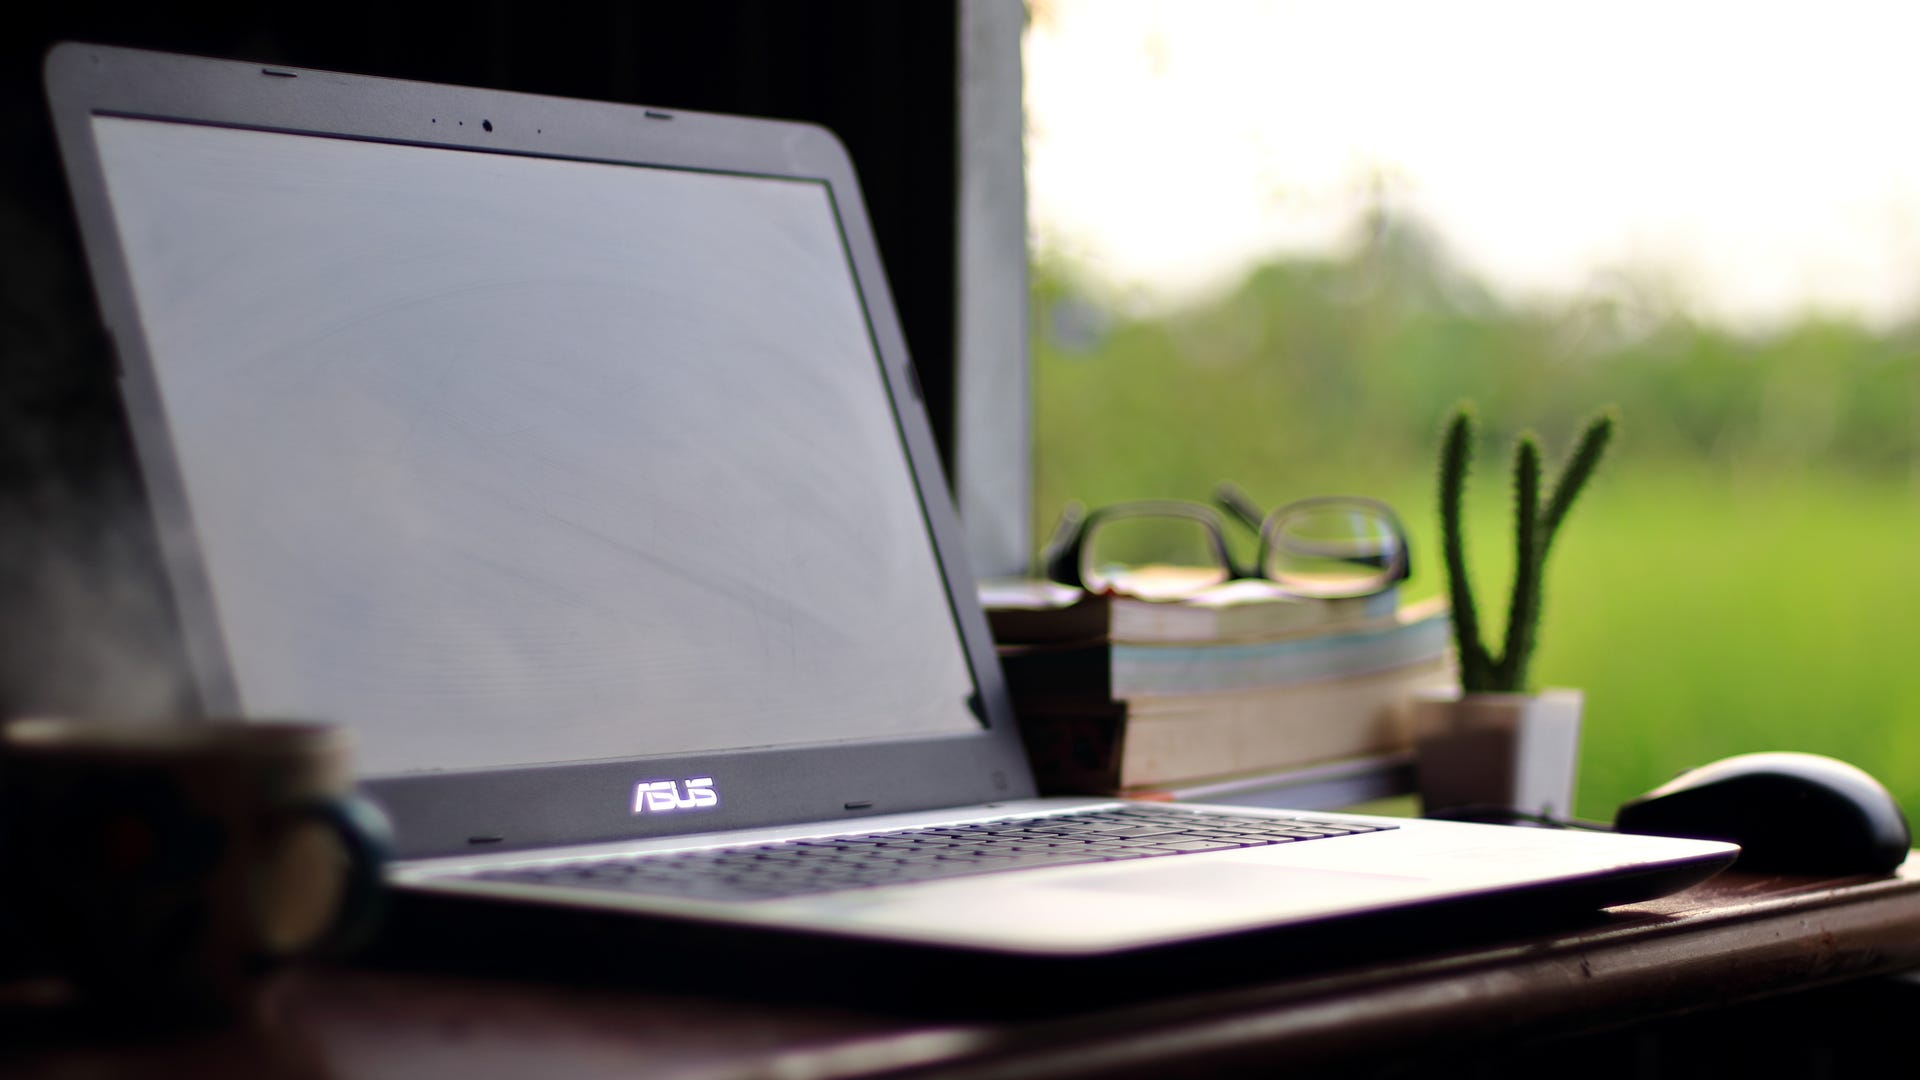 Asus latop on desk